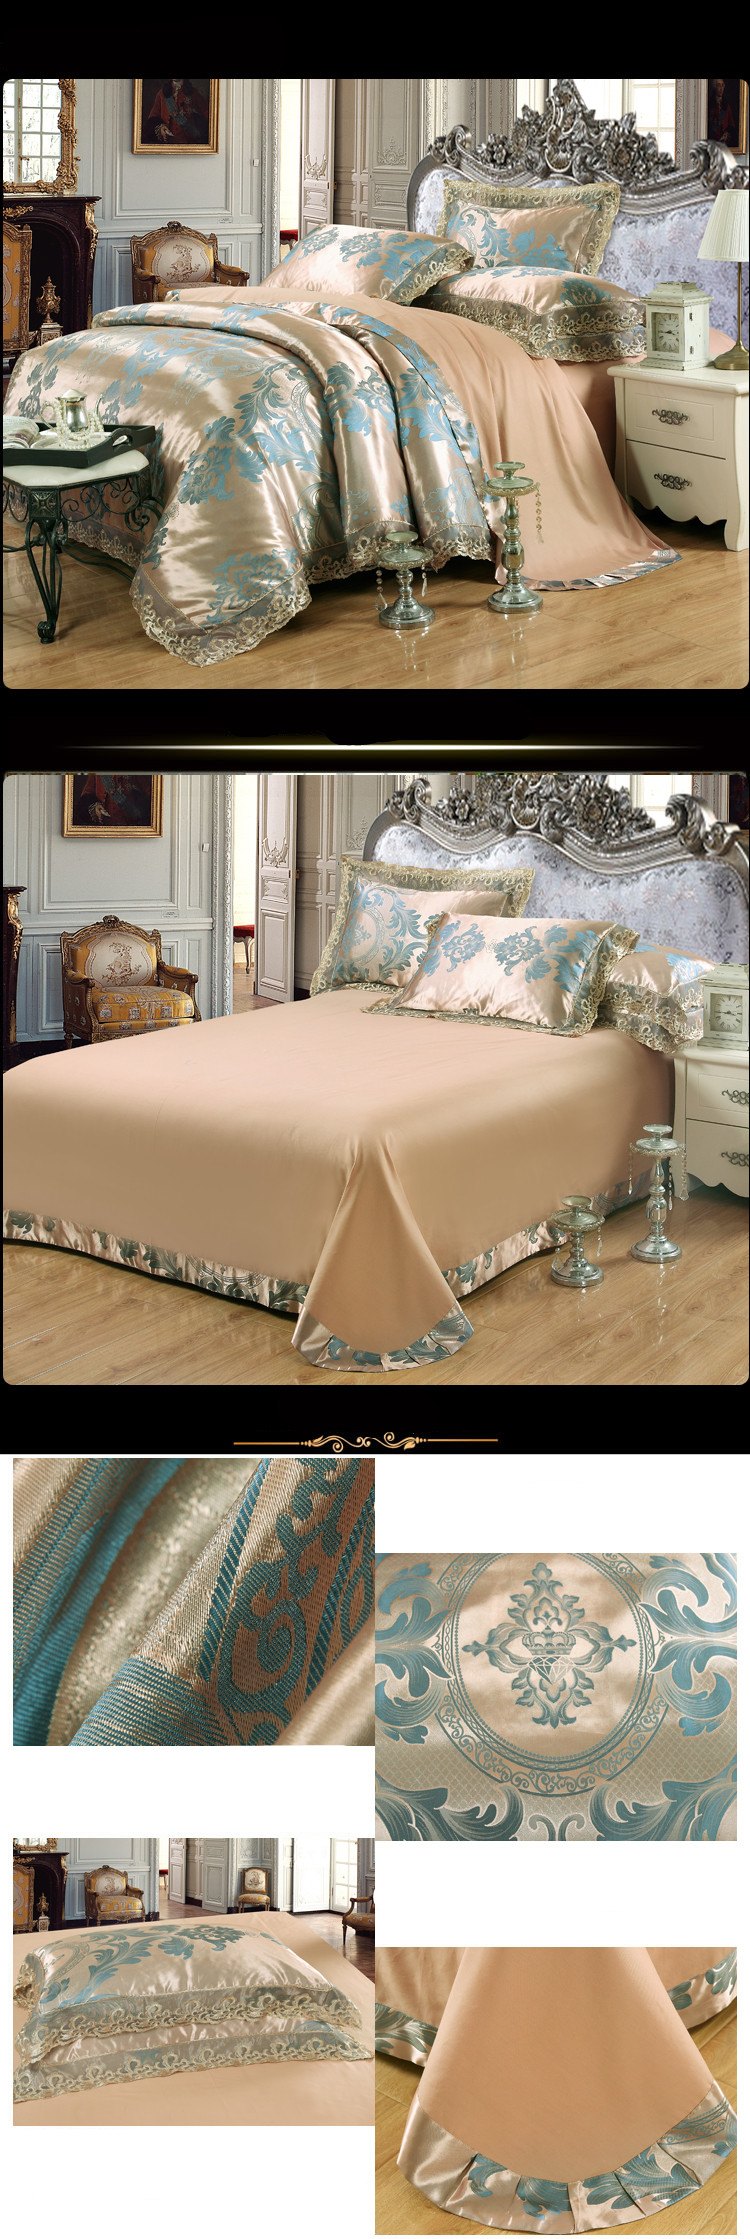 New Luxury Embroidery Tinsel Satin Silk Jacquard Bedding Set, Queen, King Size, 4pcs/6pcs 24